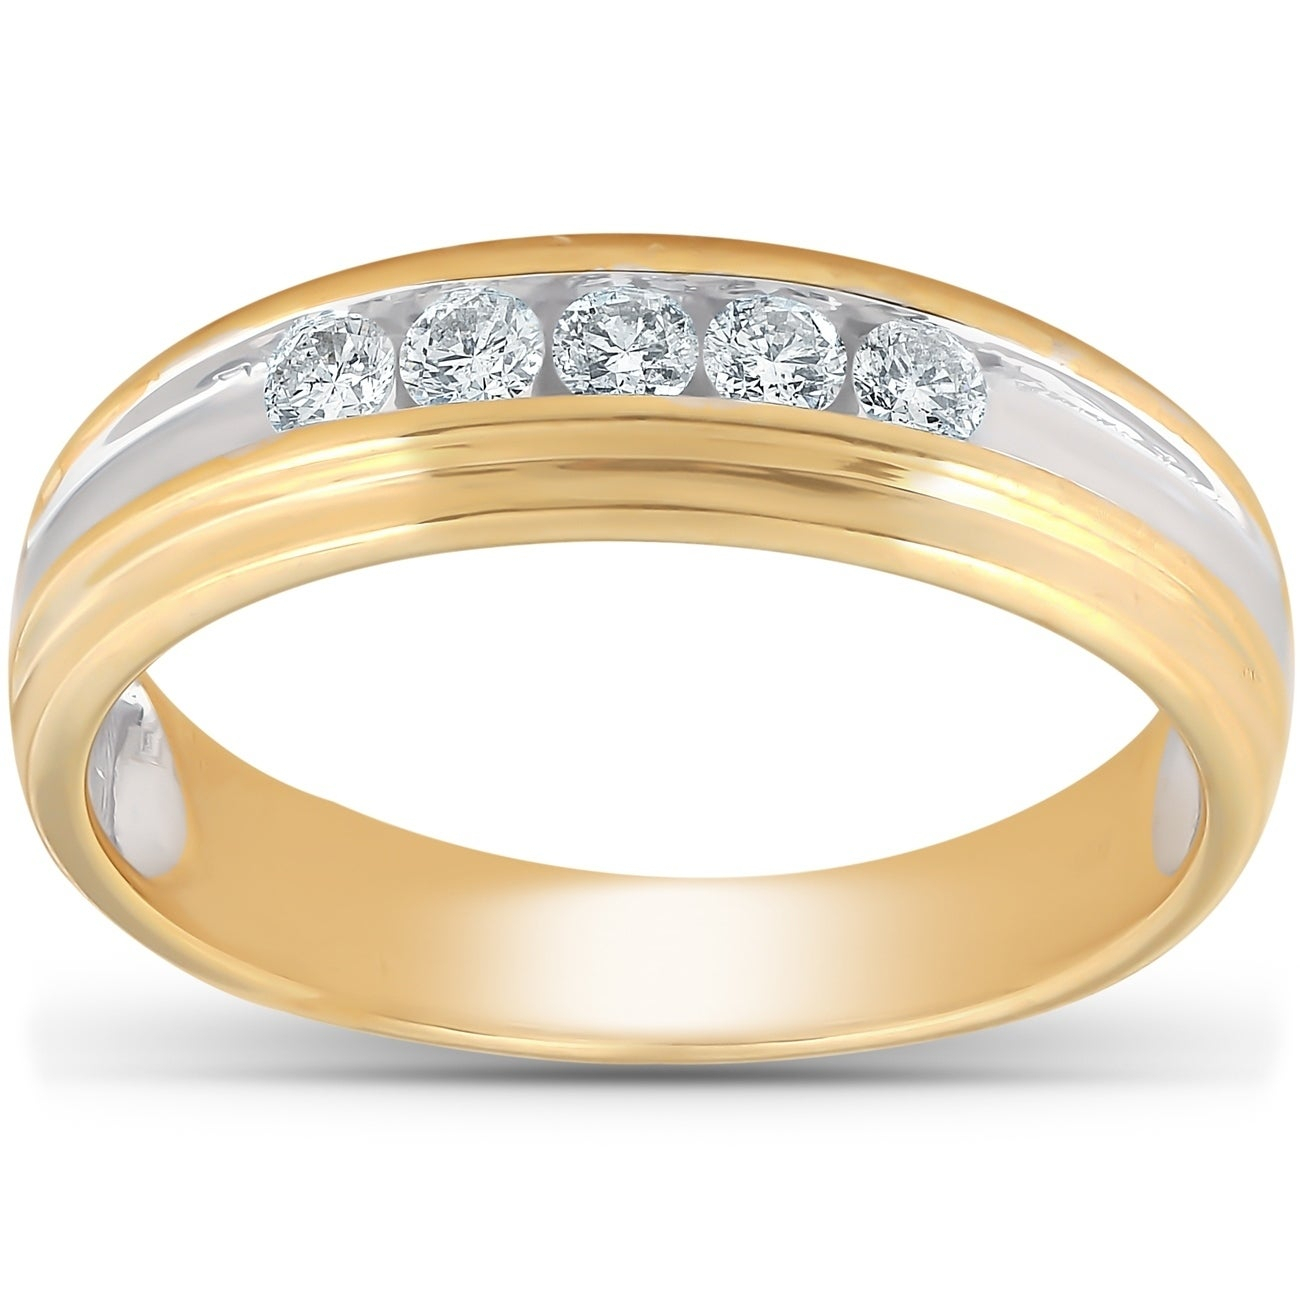 Pompeii3 10k Yellow Gold 1/4 Ct Tdw Mens Diamond Channel Set Wedding Ring Anniversary Band Regarding Most Recent Diamond Slant Anniversary Bands In Gold (View 11 of 25)